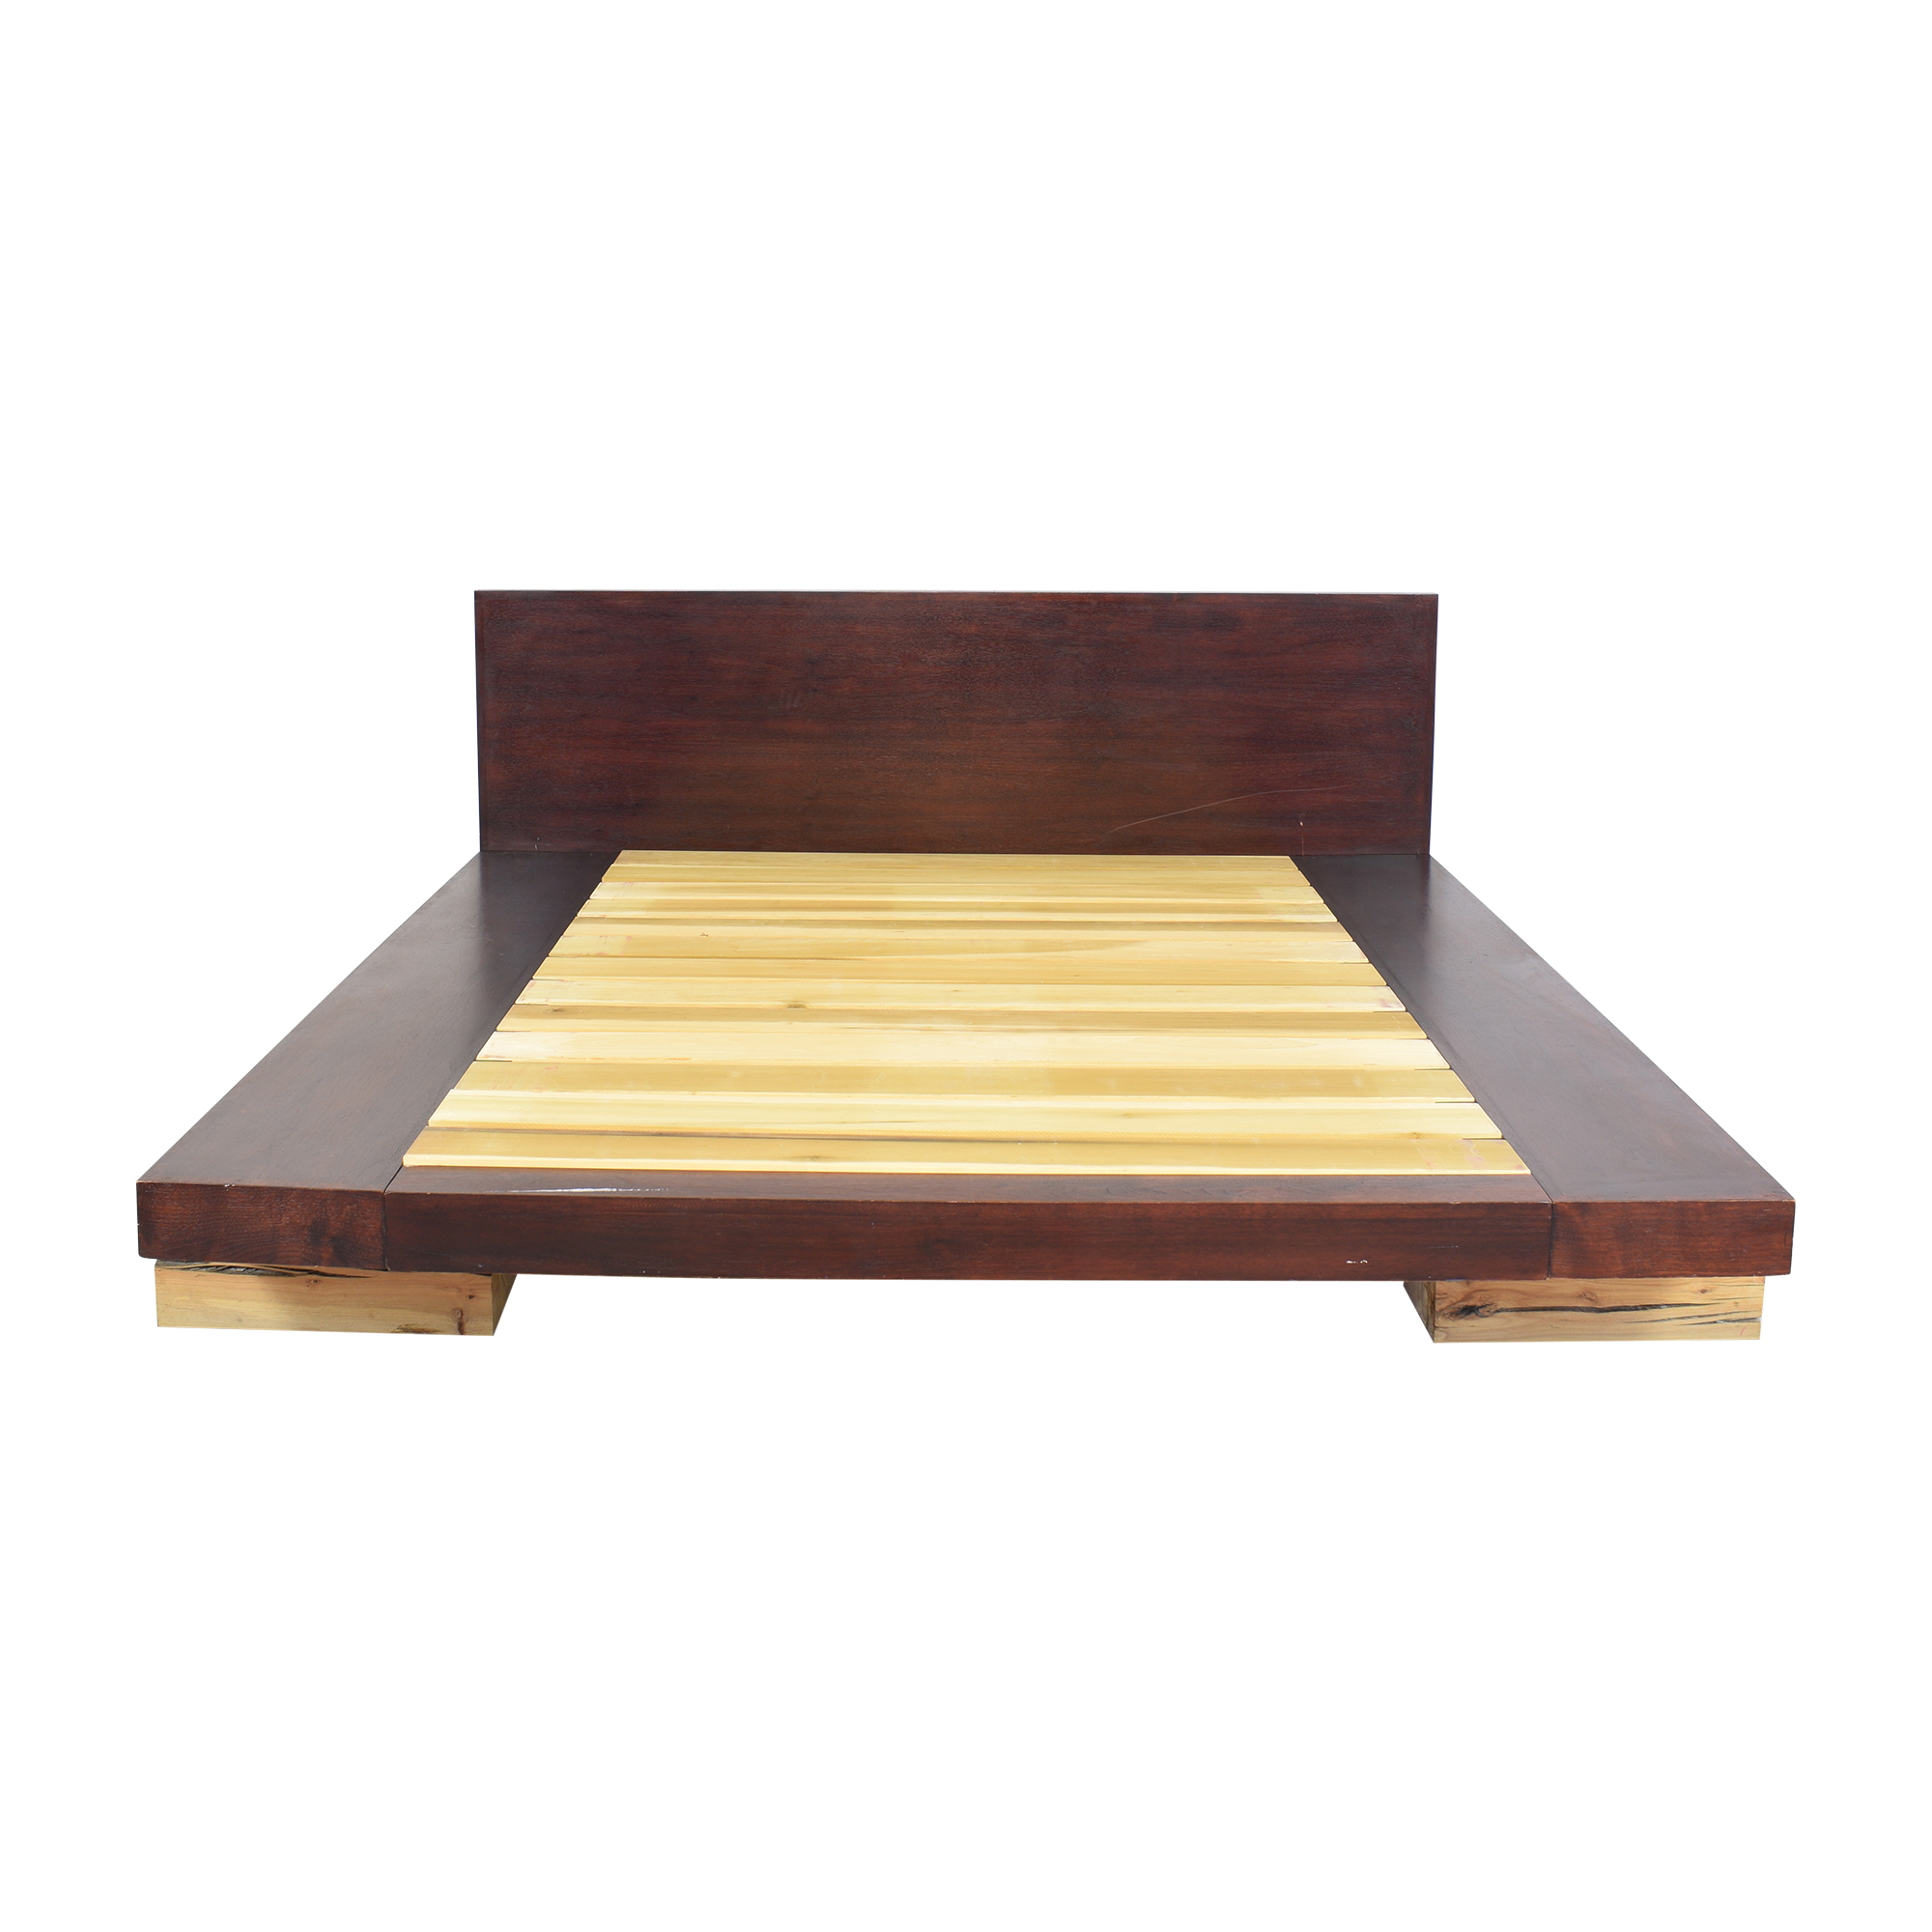 ABC Carpet & Home ABC Carpet & Home Railroad Tie Platform Bed Bed Frames